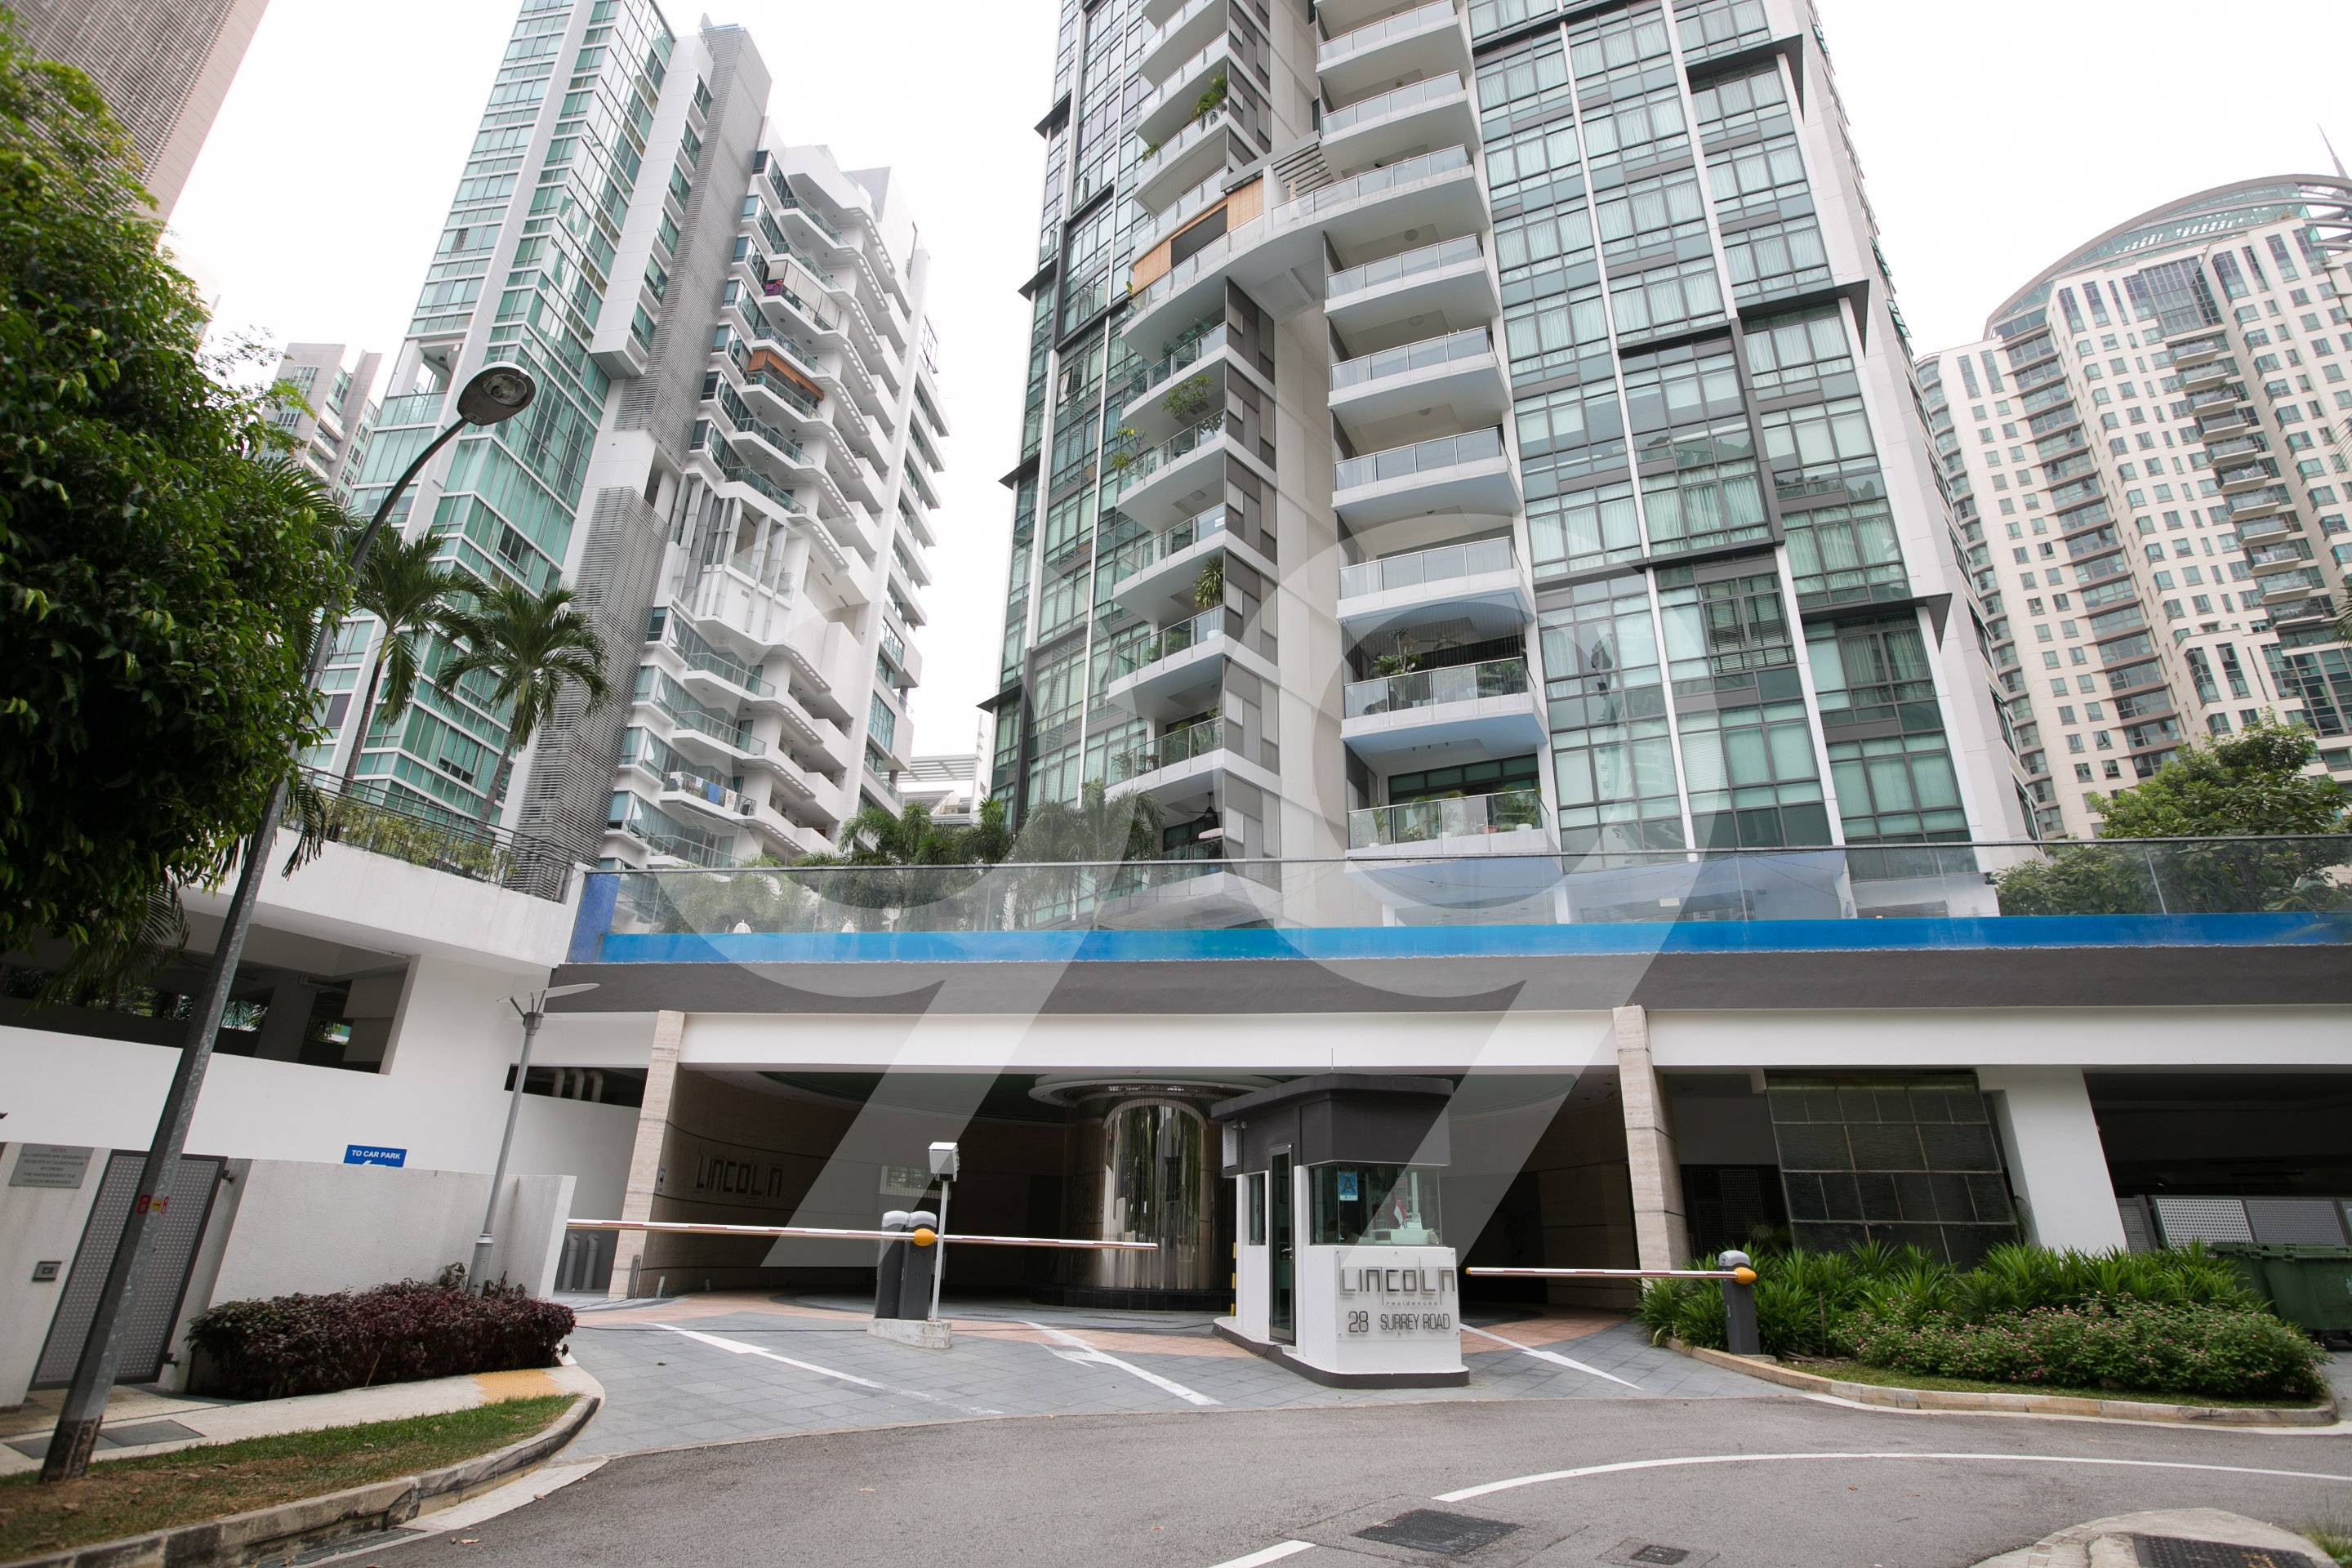 The Lincoln Residences